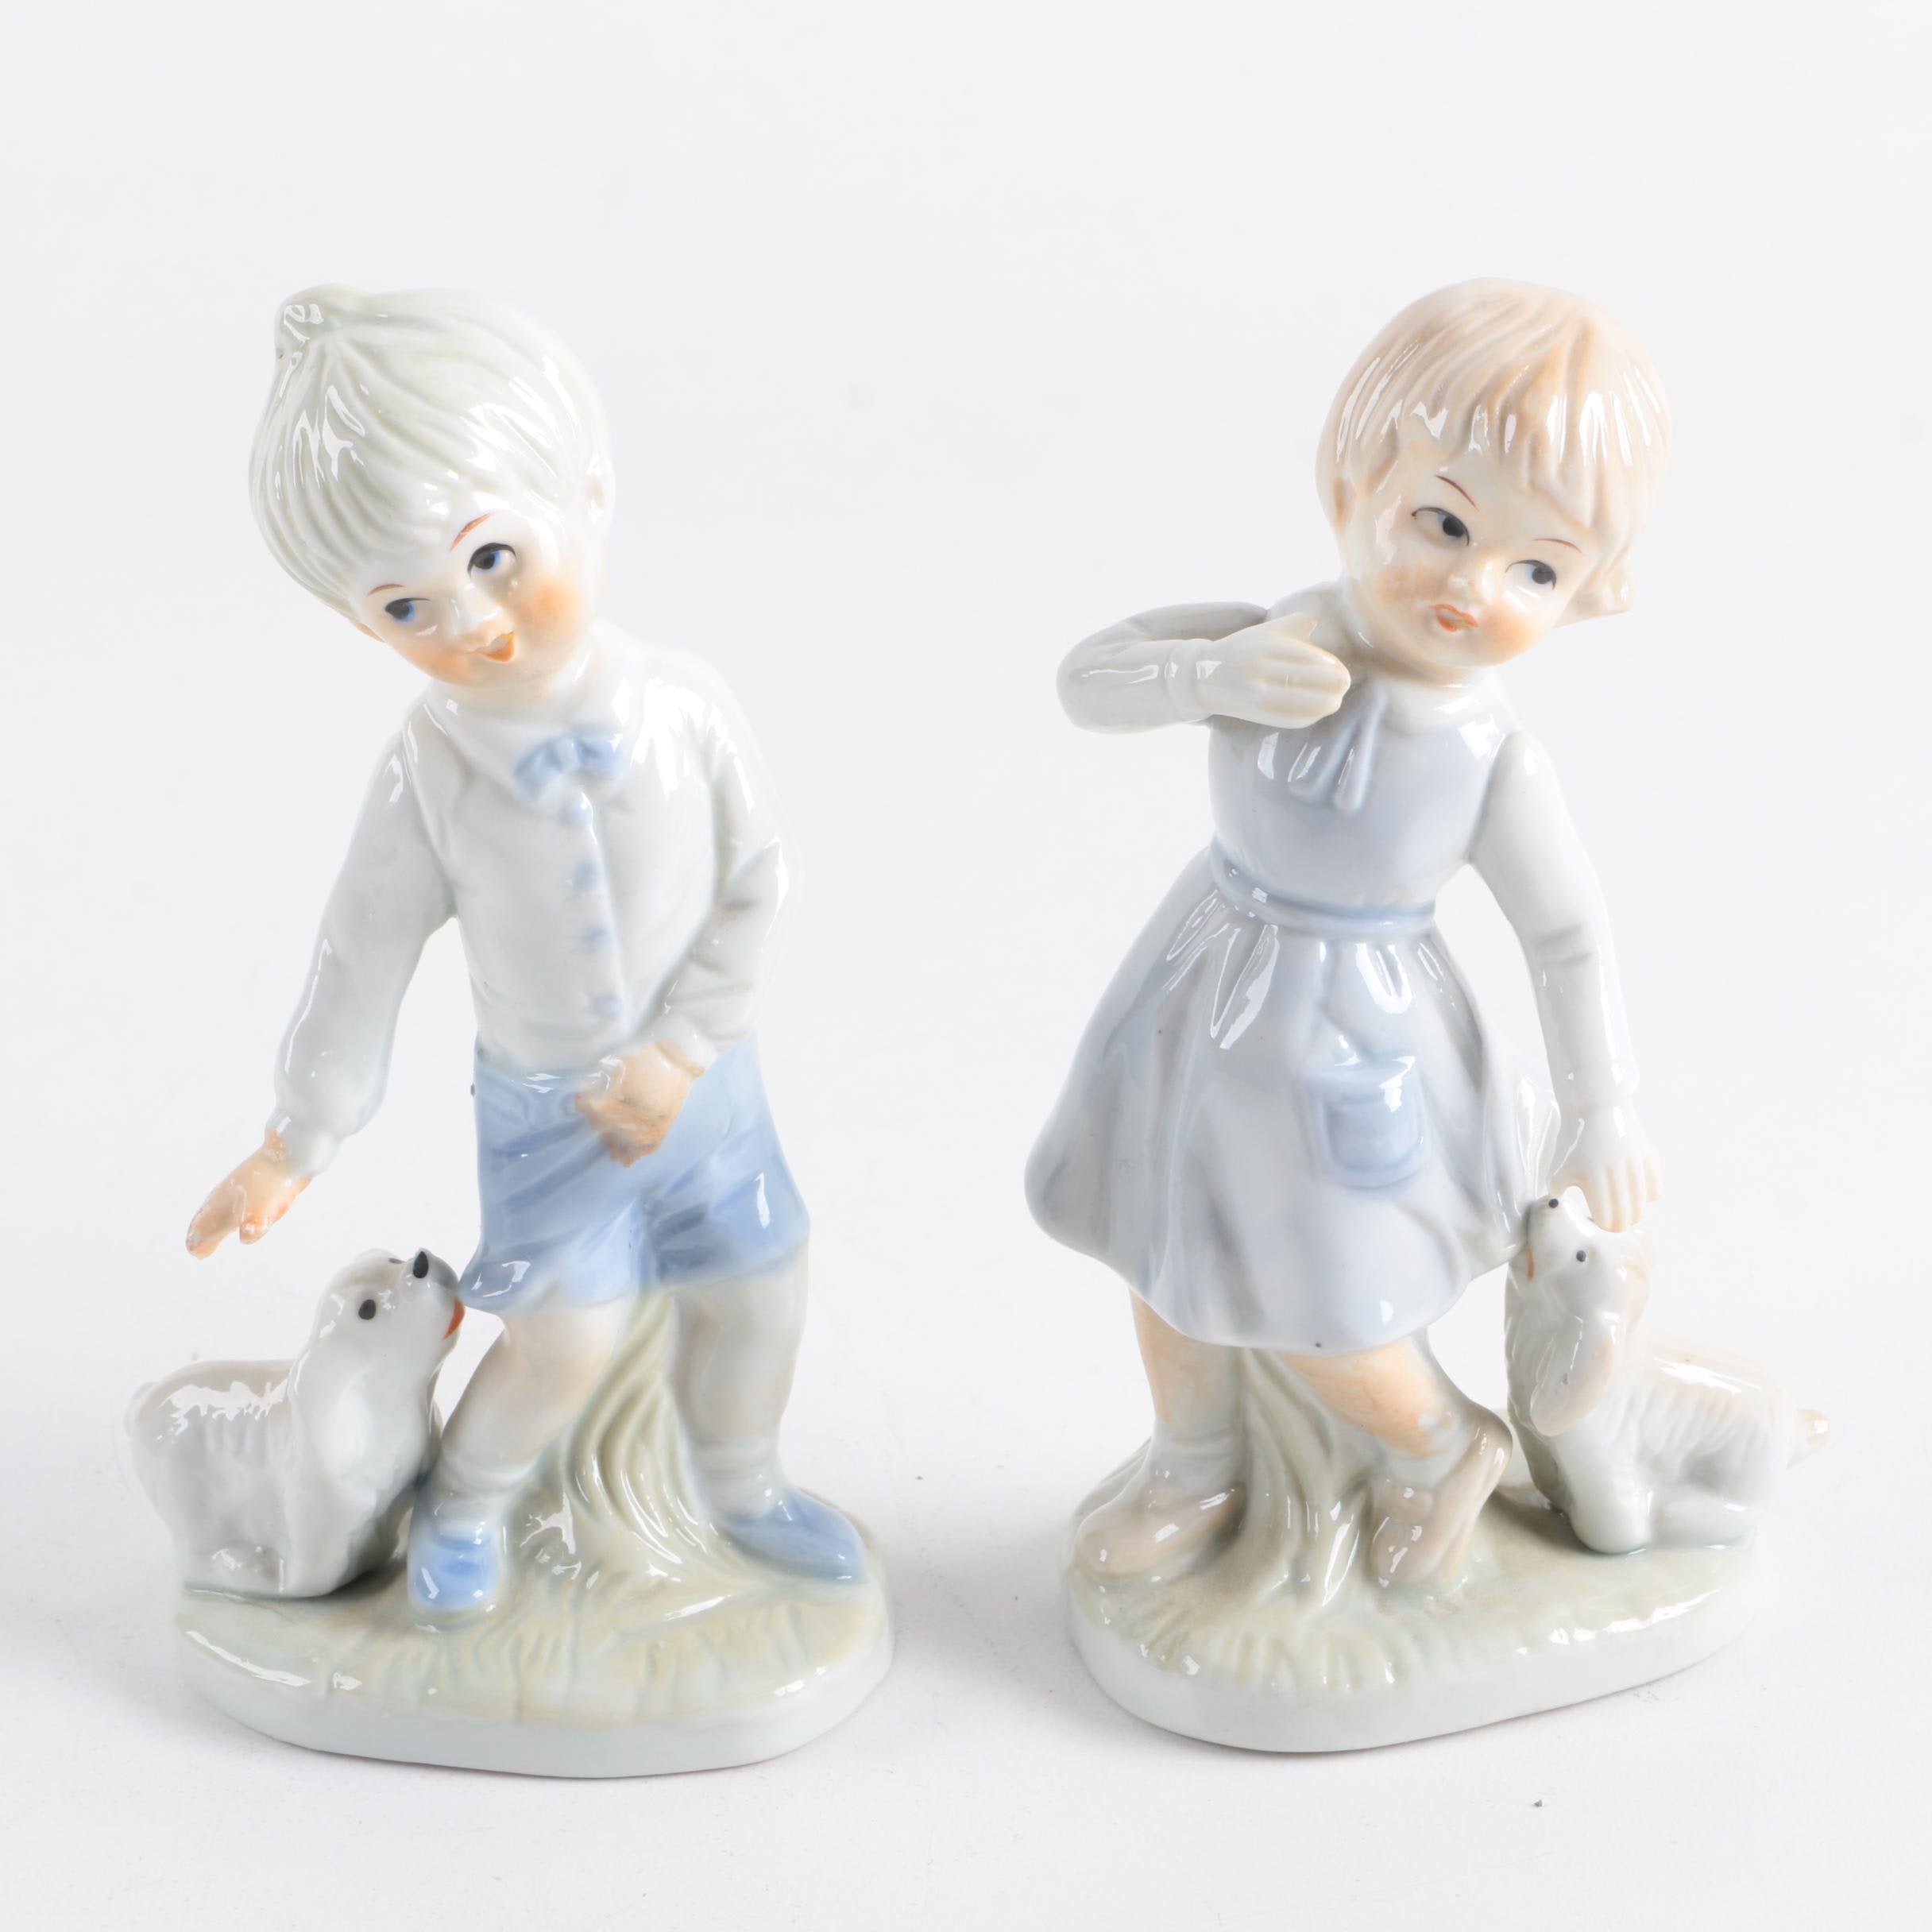 Porcelain Figurines of Girl and Boy